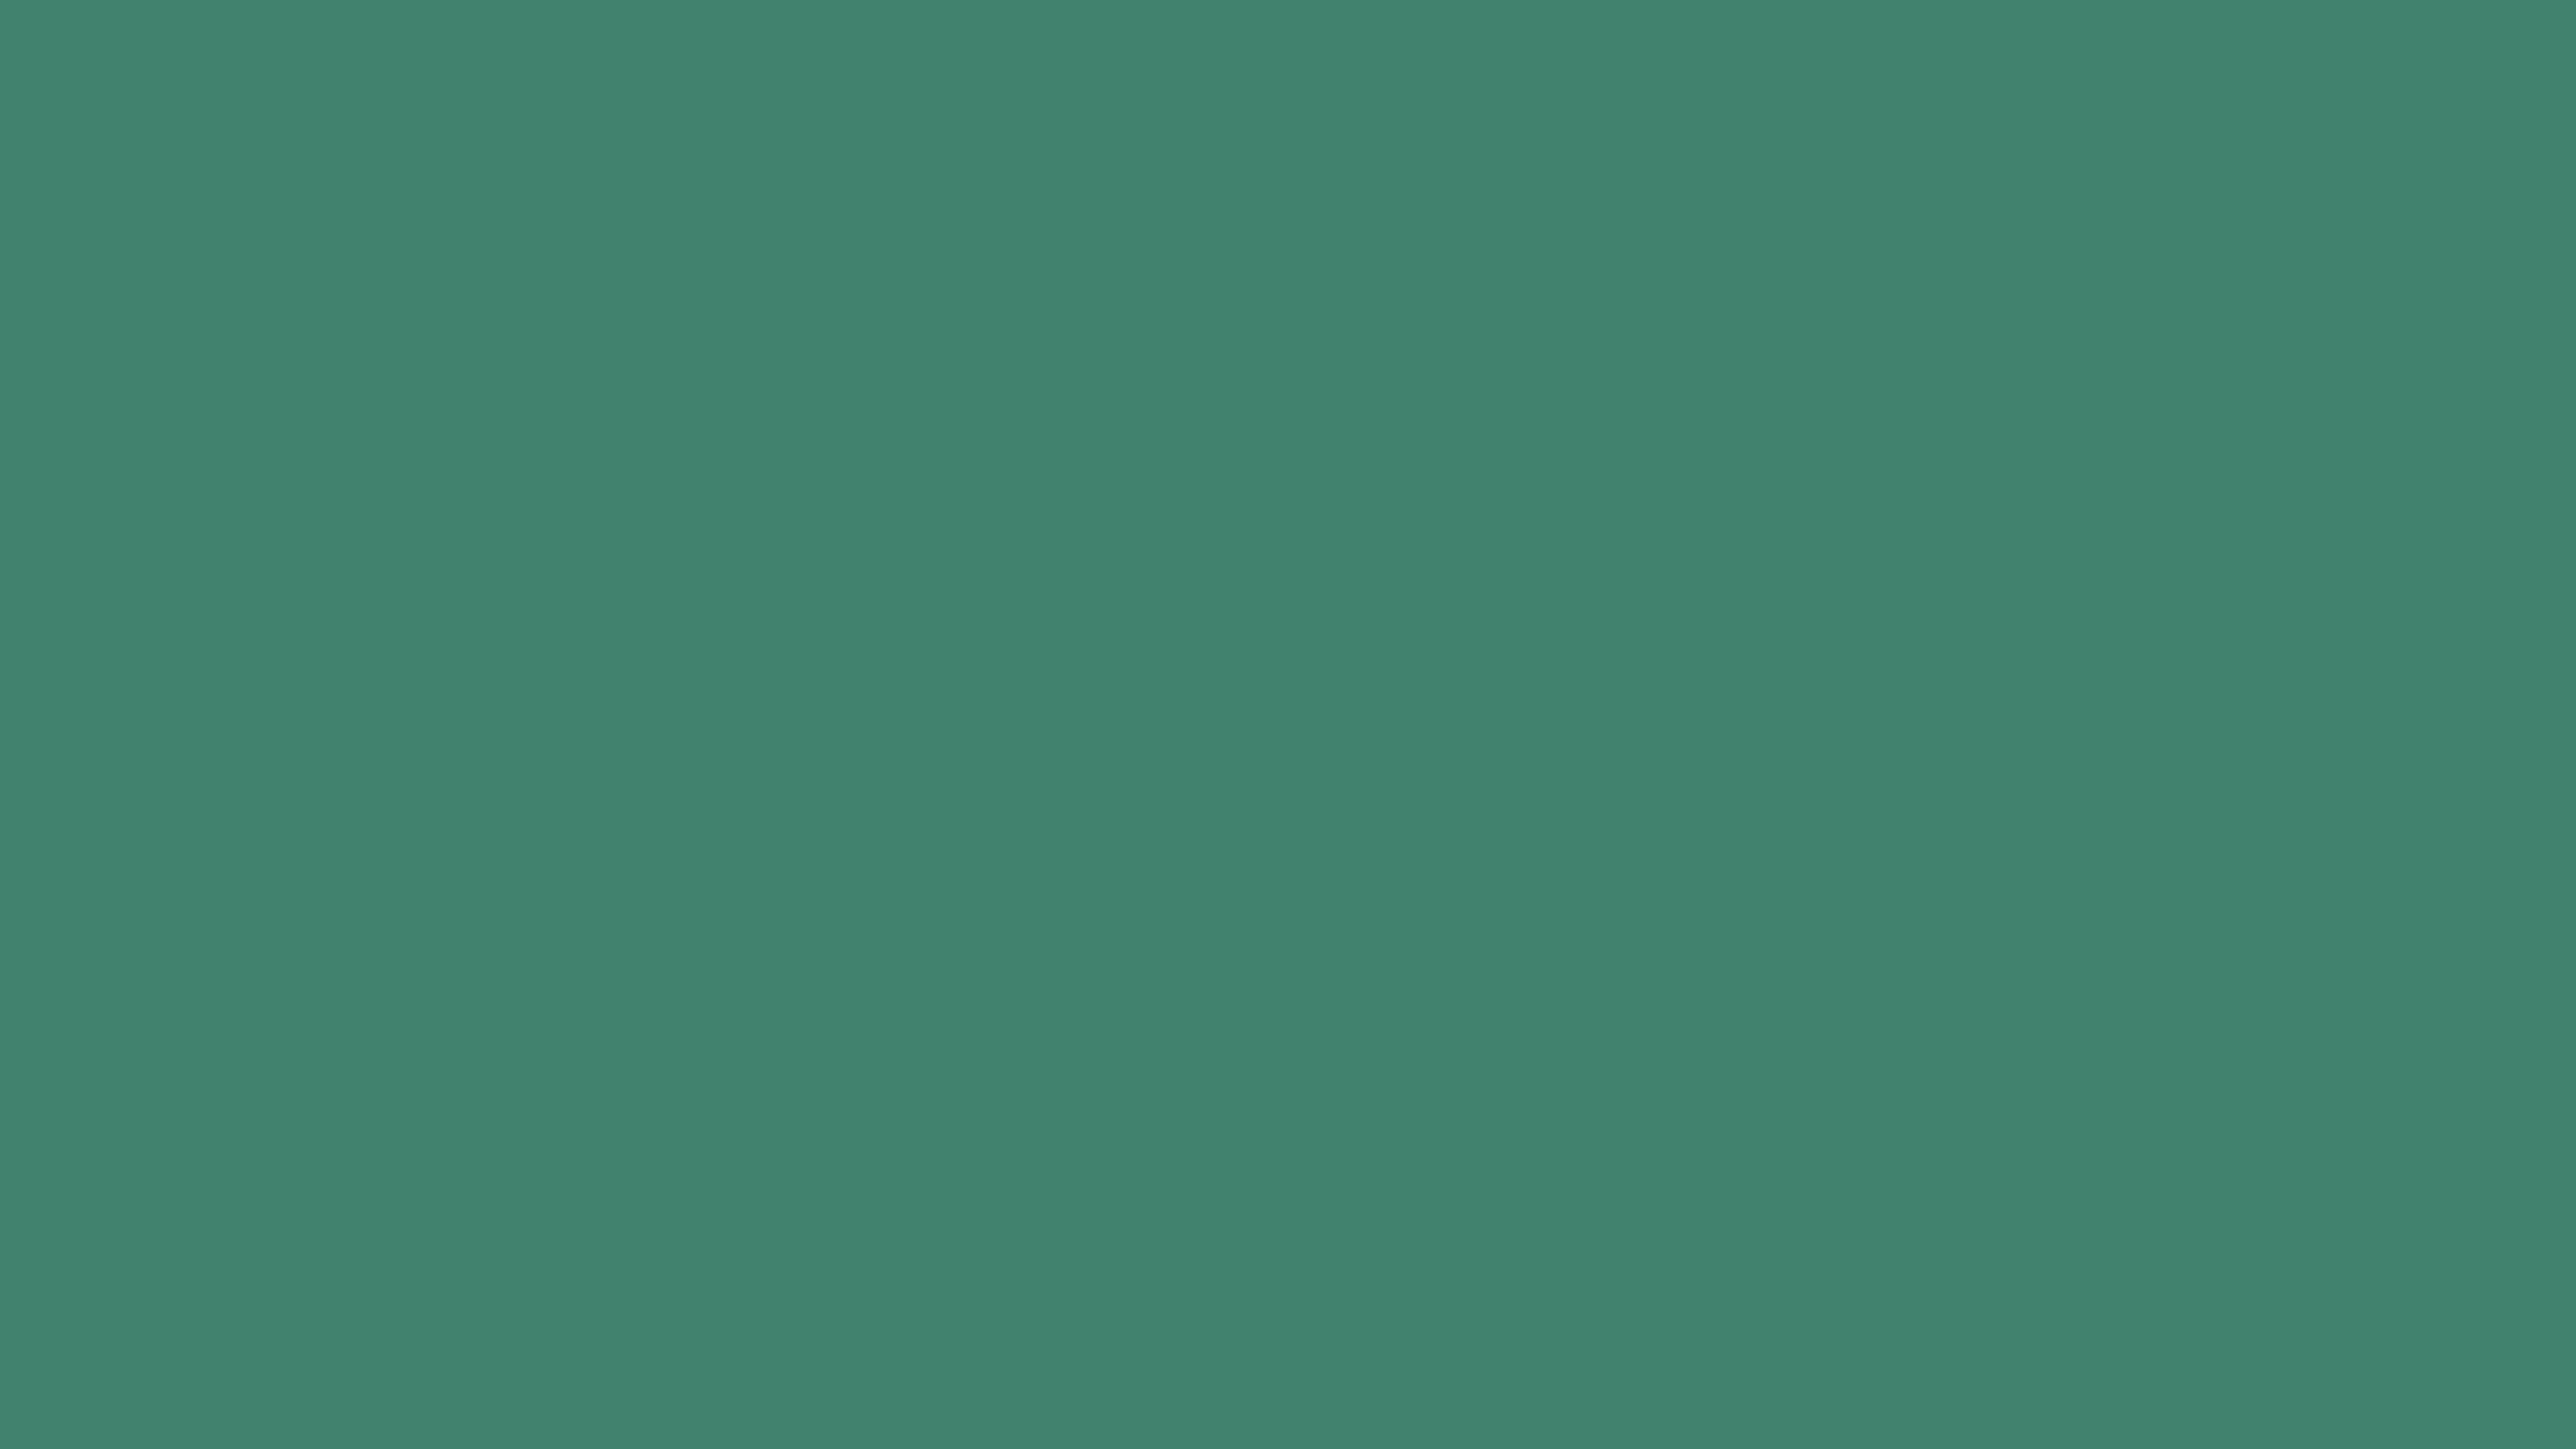 7680x4320 Viridian Solid Color Background